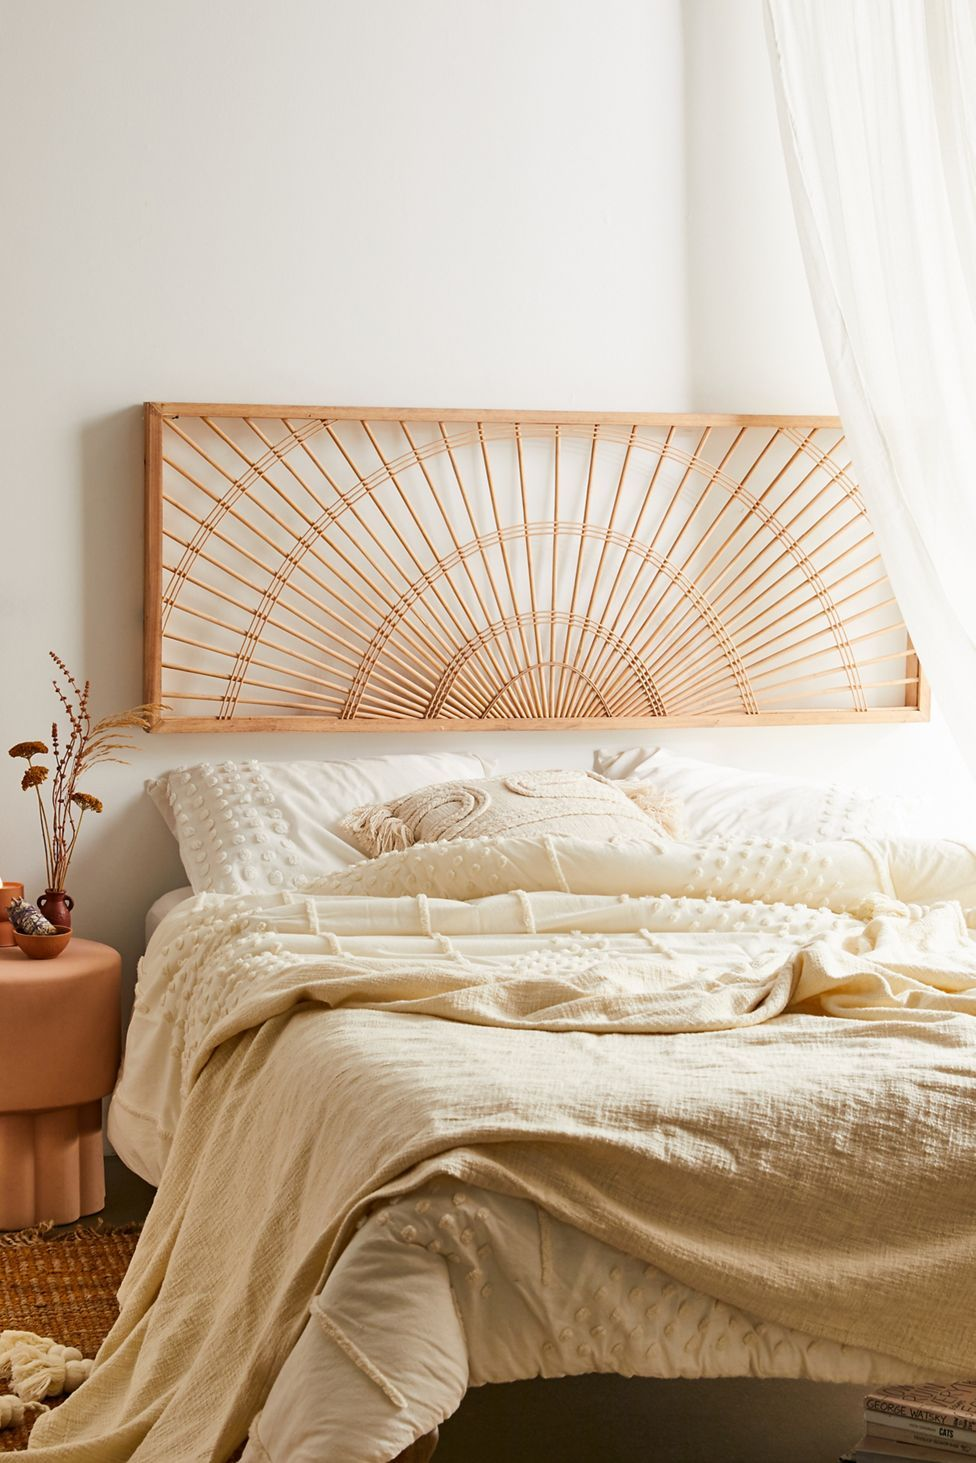 Sol Wooden Headboard   Urban Outfitters   Bed frame and headboard ...